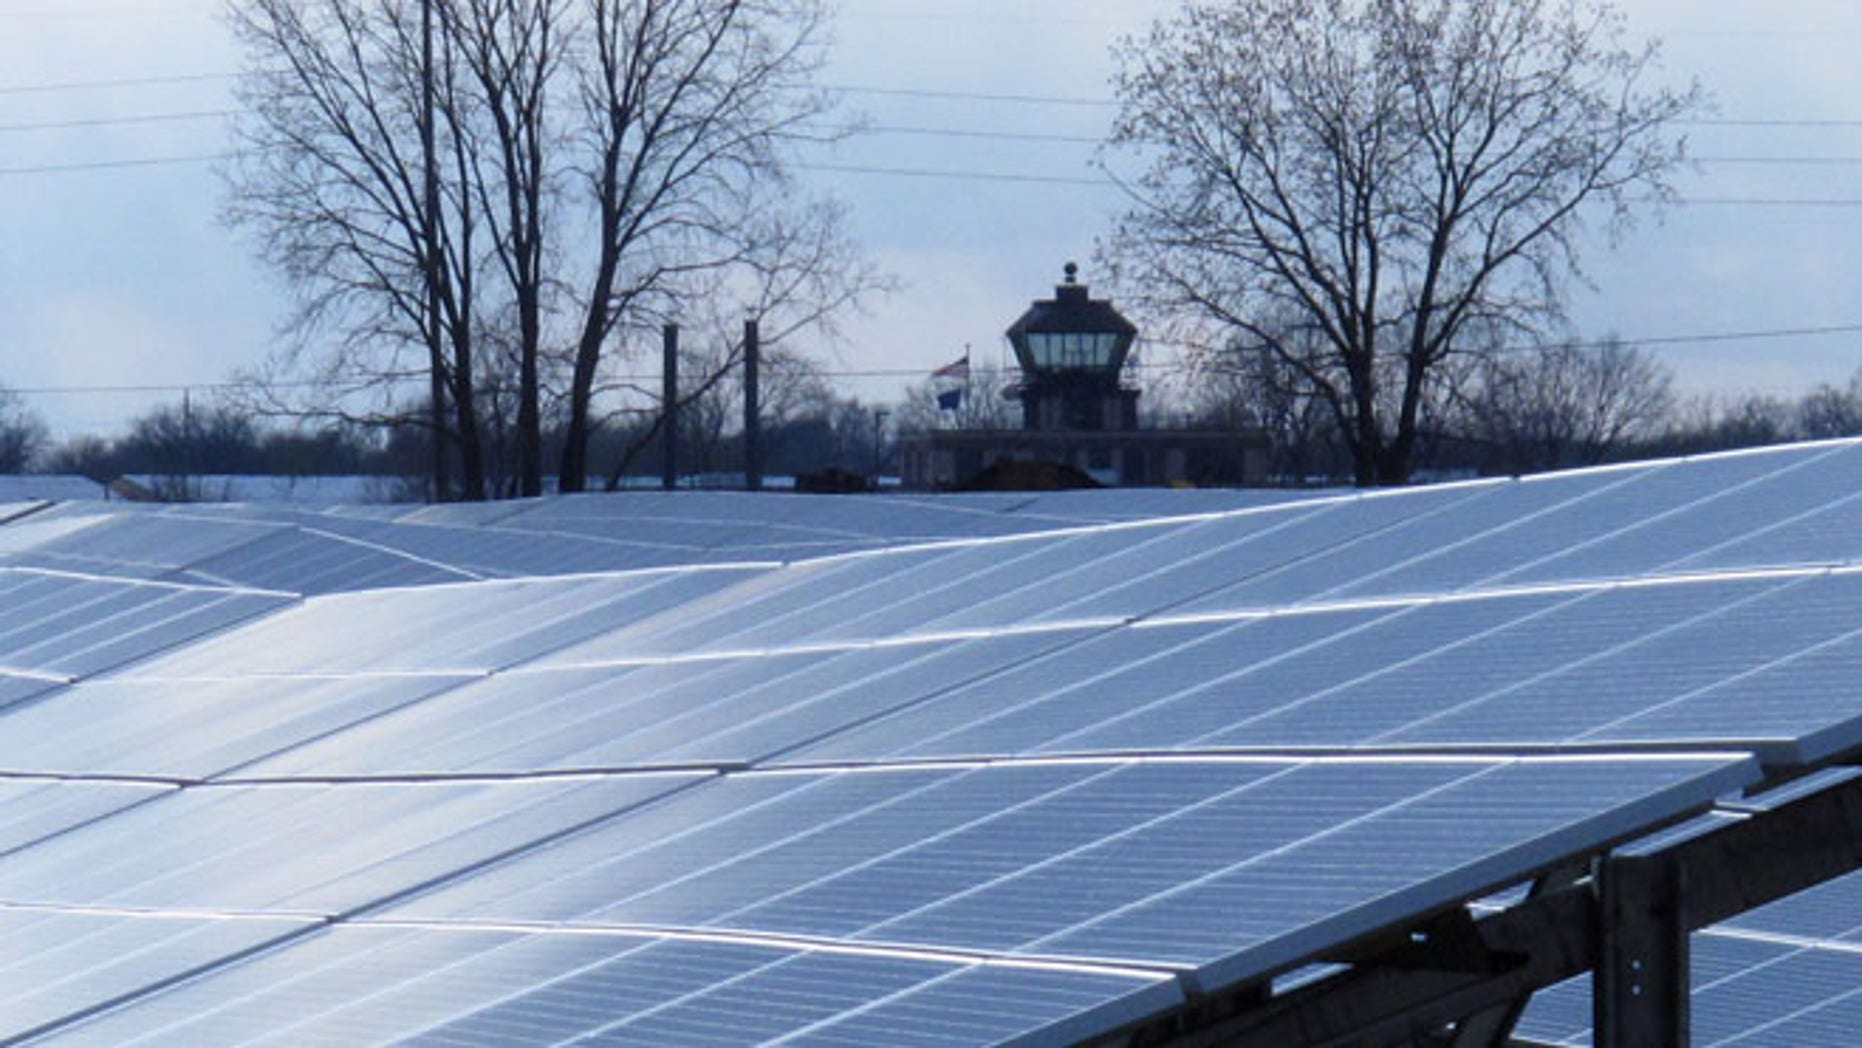 April 15, 2013: Sunlight streams onto the 43-acre Maywood Solar Farm.